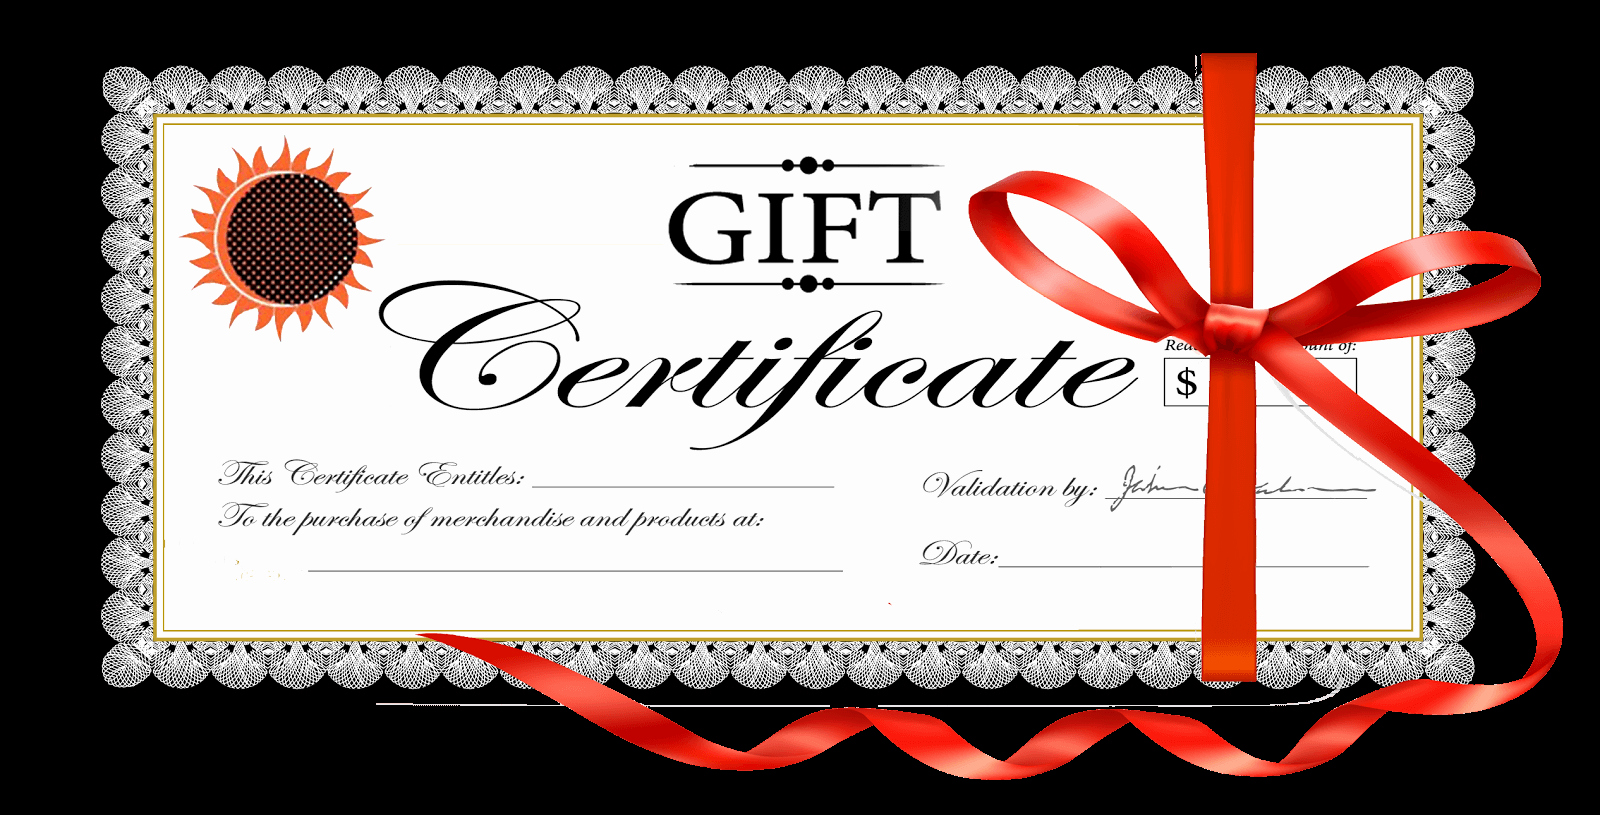 Disney Gift Certificate Template Best Of 60th Birthday Gift Ideas – Your Party Starts Here